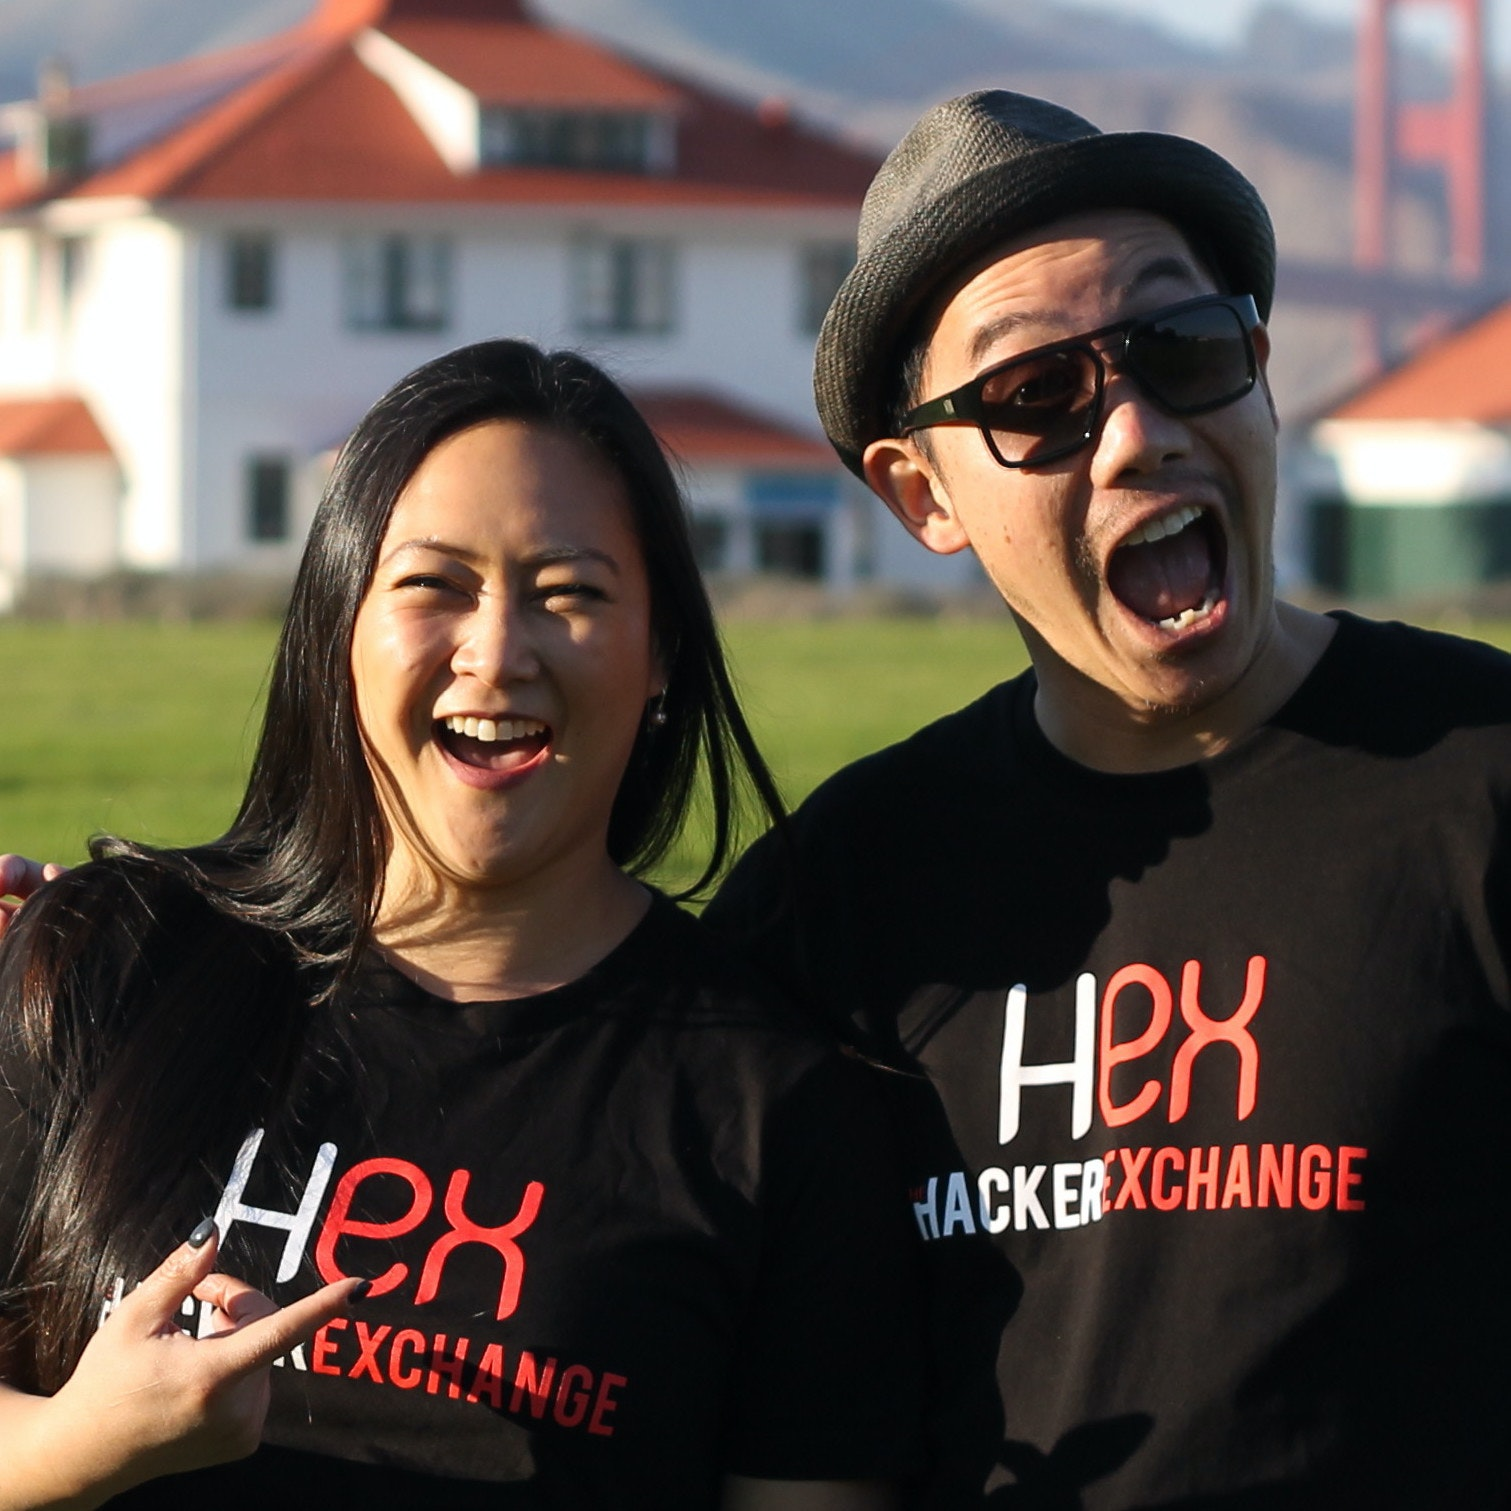 The Hacker Exchange team